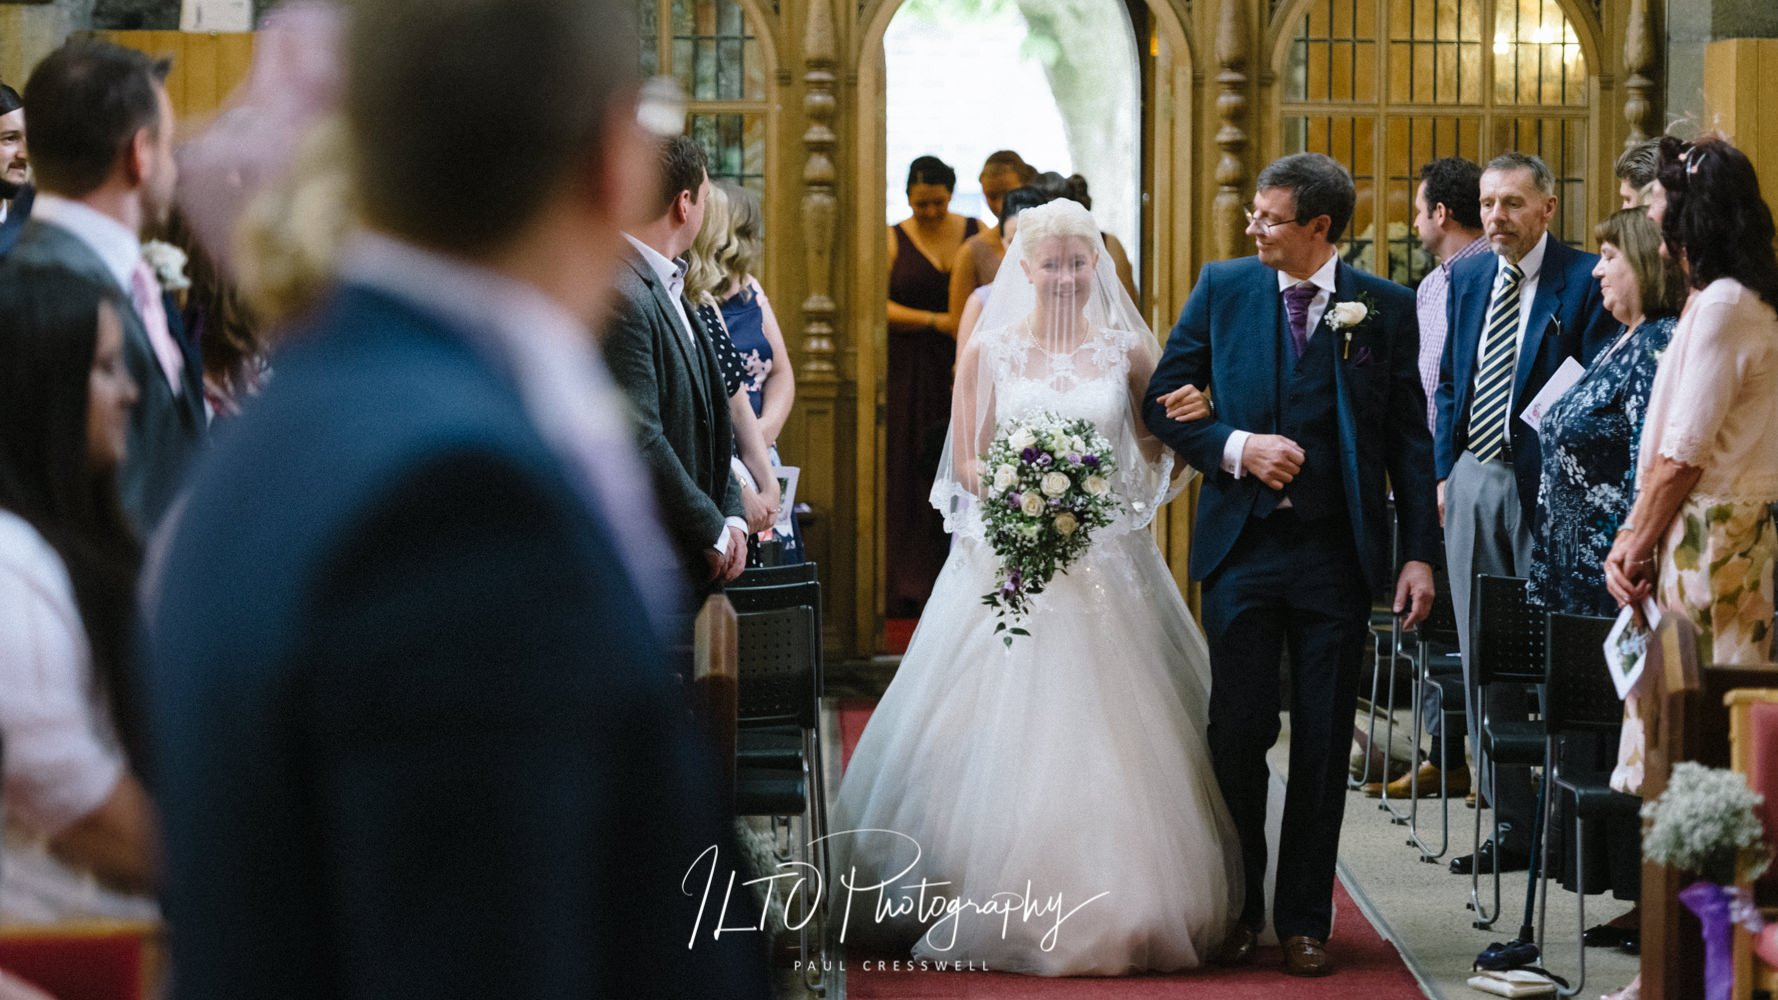 Classic affordable natural wedding photography